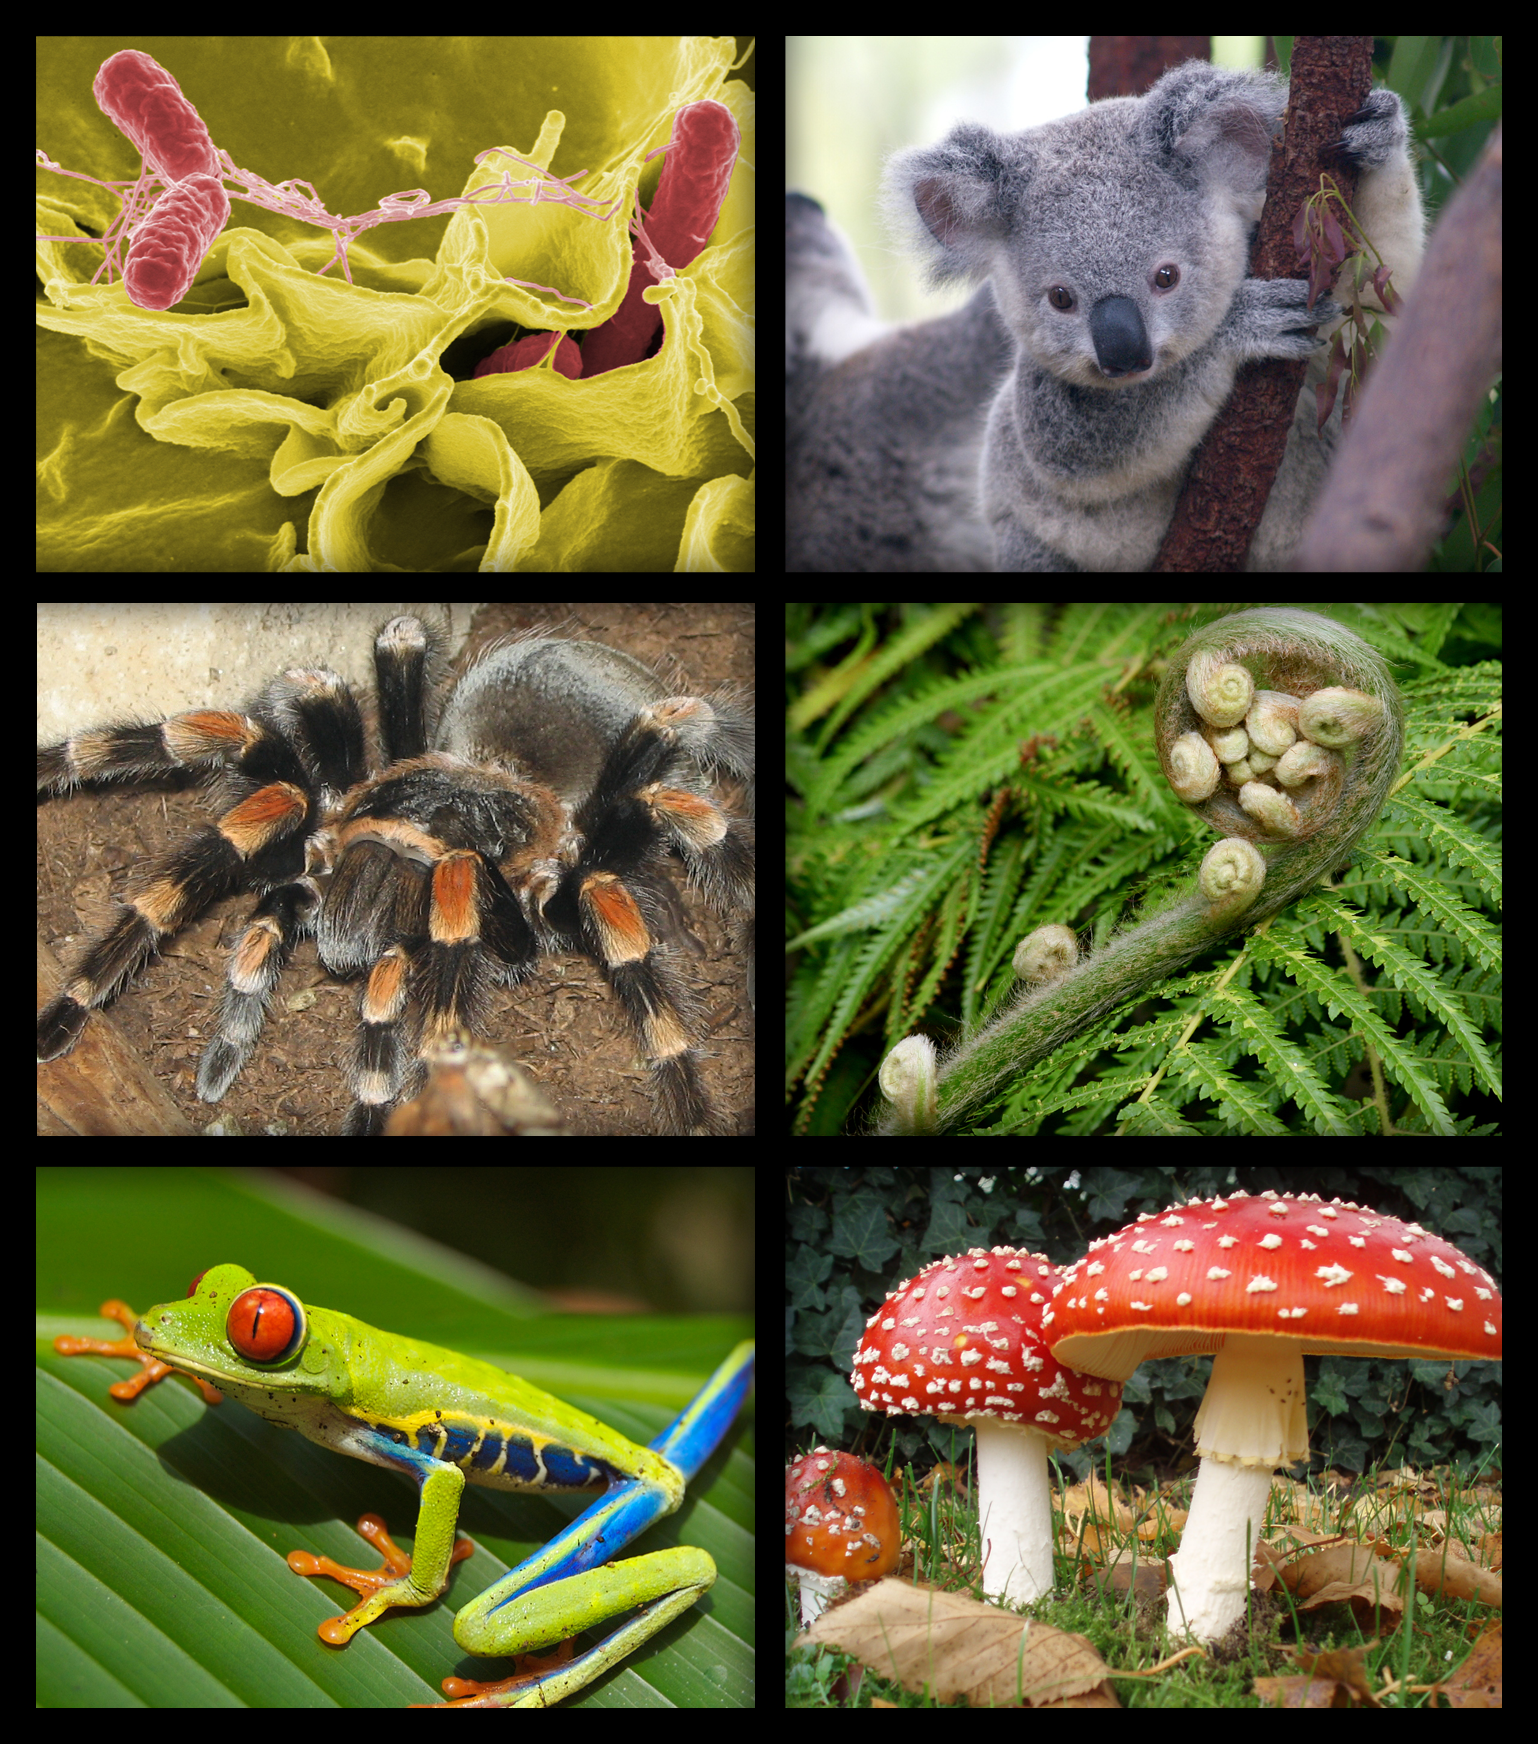 Pictures of plant and animal life